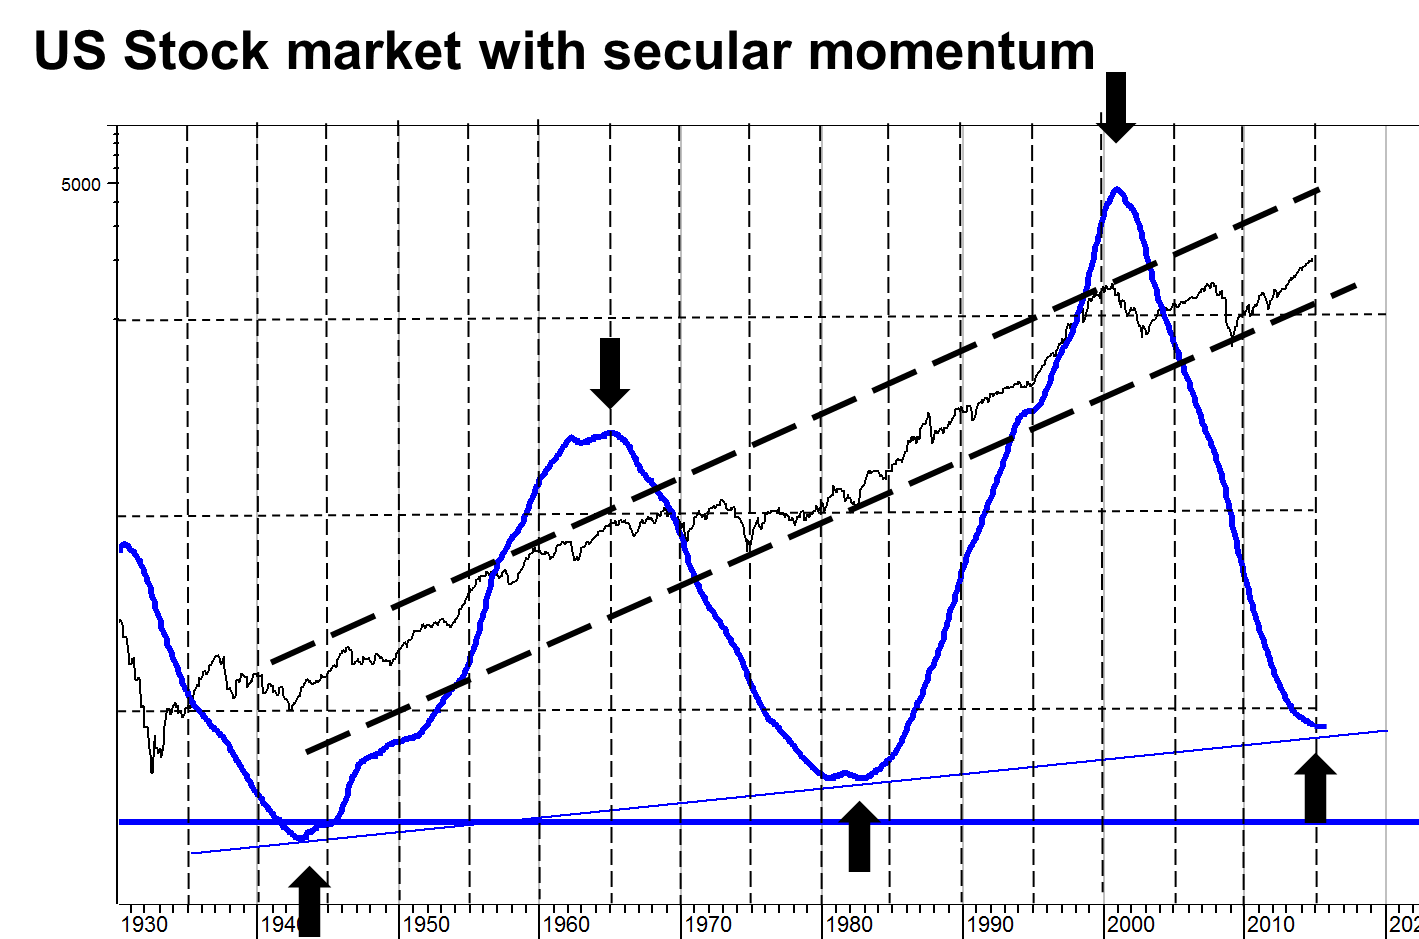 On this chart you can see that the decline in the Secular Momentum Indicator (marked blue on the right chart) has matched my forecast almost perfectly. Also you can see that my forecast in 2001 of a new secular bull market to start around 2010 has become stunningly accurate as the  S&P Index  entered this secular uptrend following the financial crisis in 2009. Furthermore, I did forecast the first bear market within this Triangle beginning in 2001 to last until 2002 or even 2004. As we know the first bear market ended in 2003.